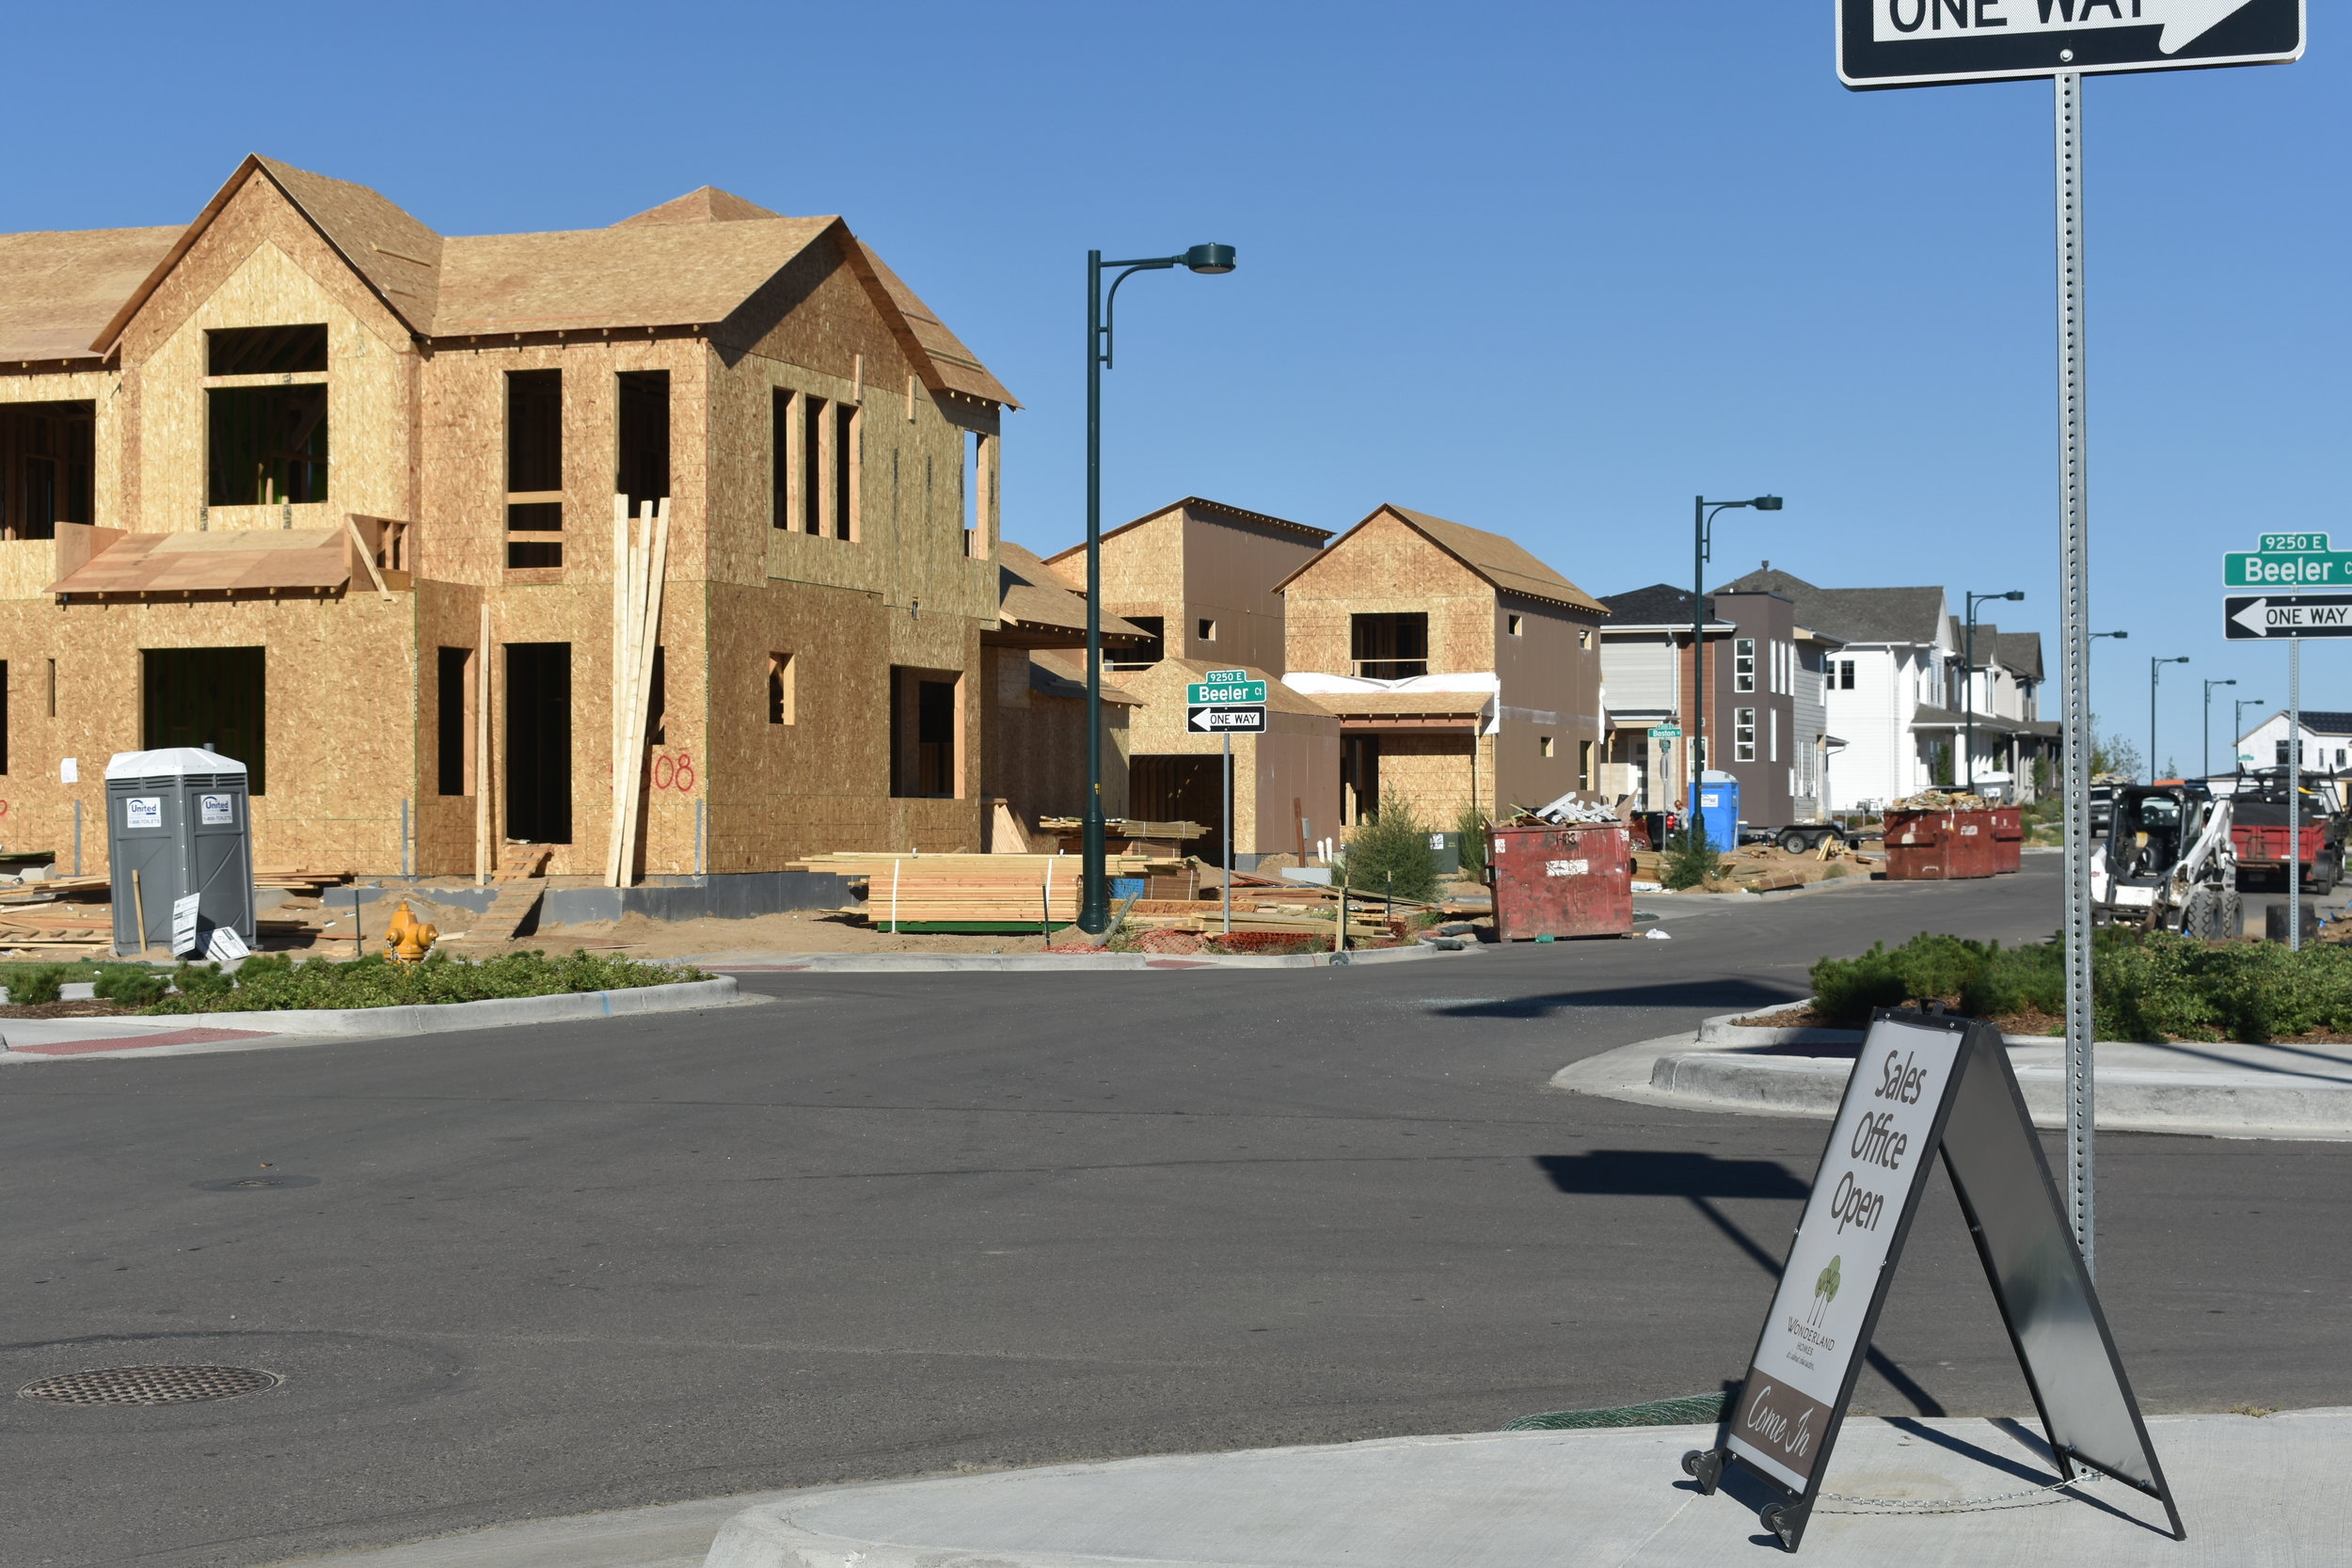 Development in the Beeler Park neighborhood in Aurora, where numerous low-rent homes are being constructed. DPS estimates that Stapleton schools will see an increase of over 1,000 students by 2021. (Credit: Sarah Ford)